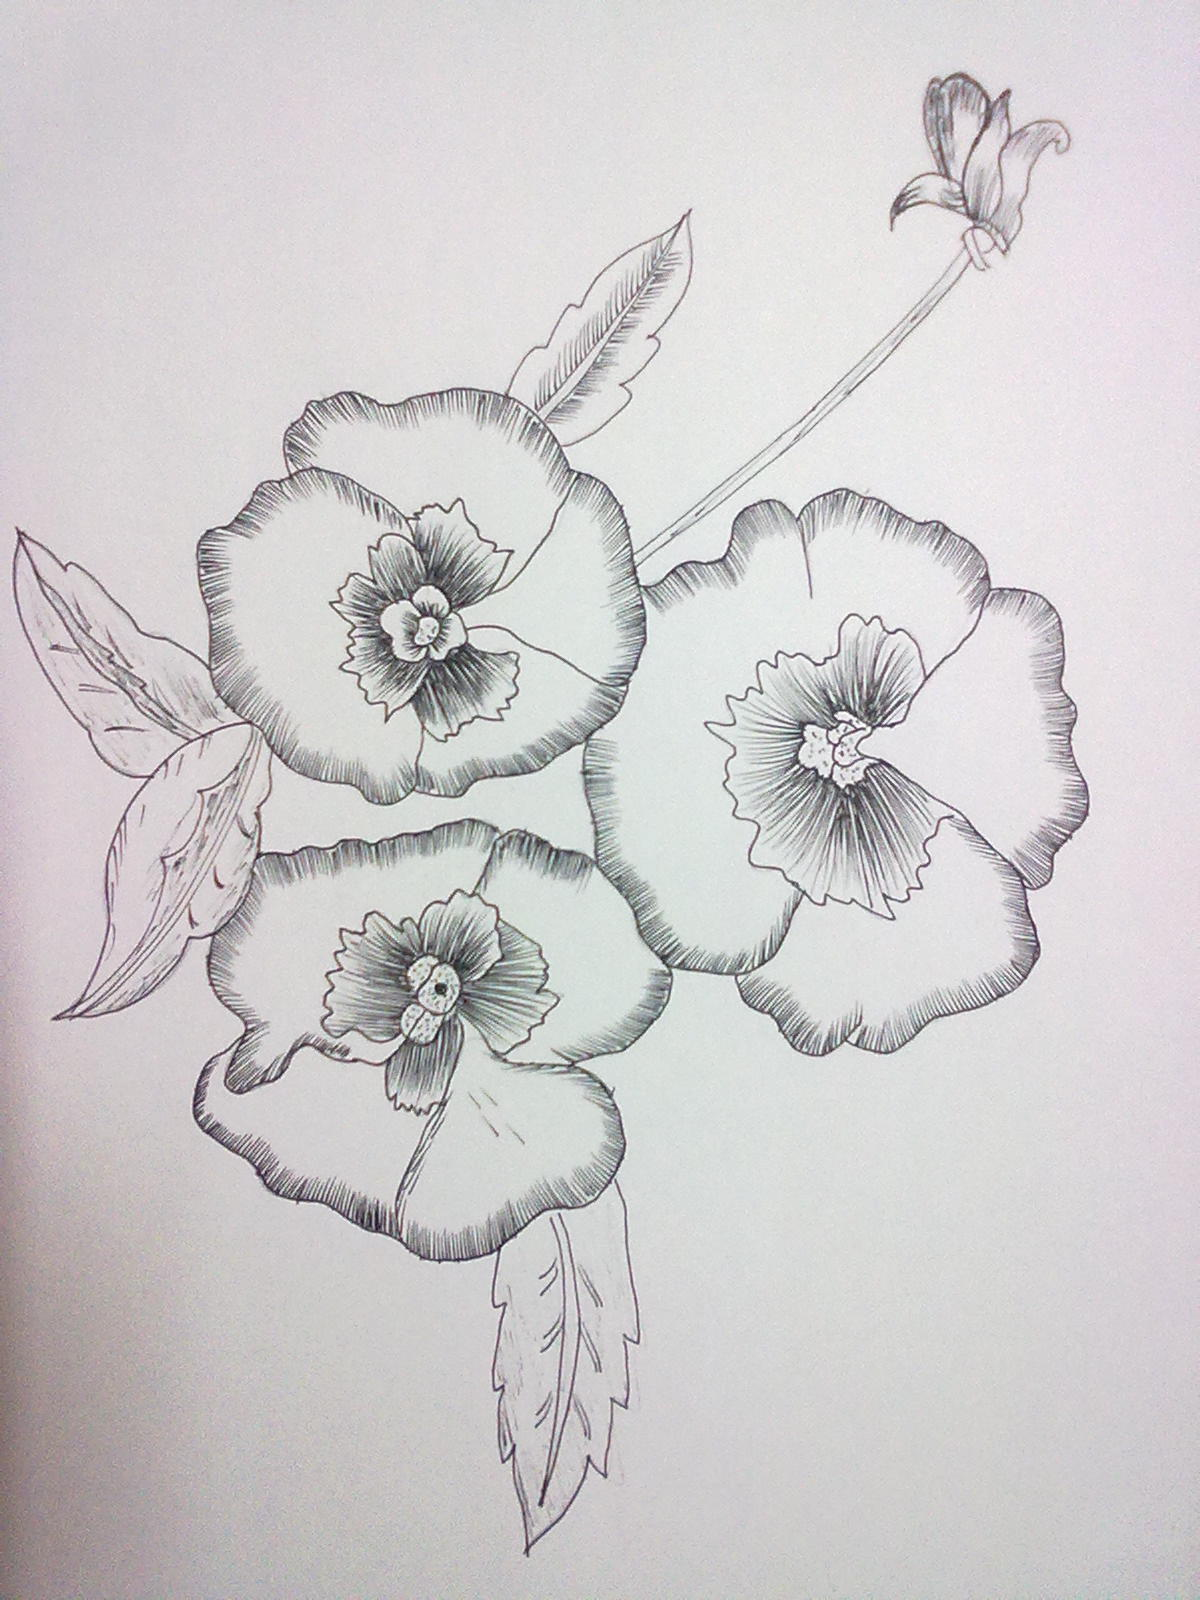 beginning the journey of drawing flowers drawing with ink pen